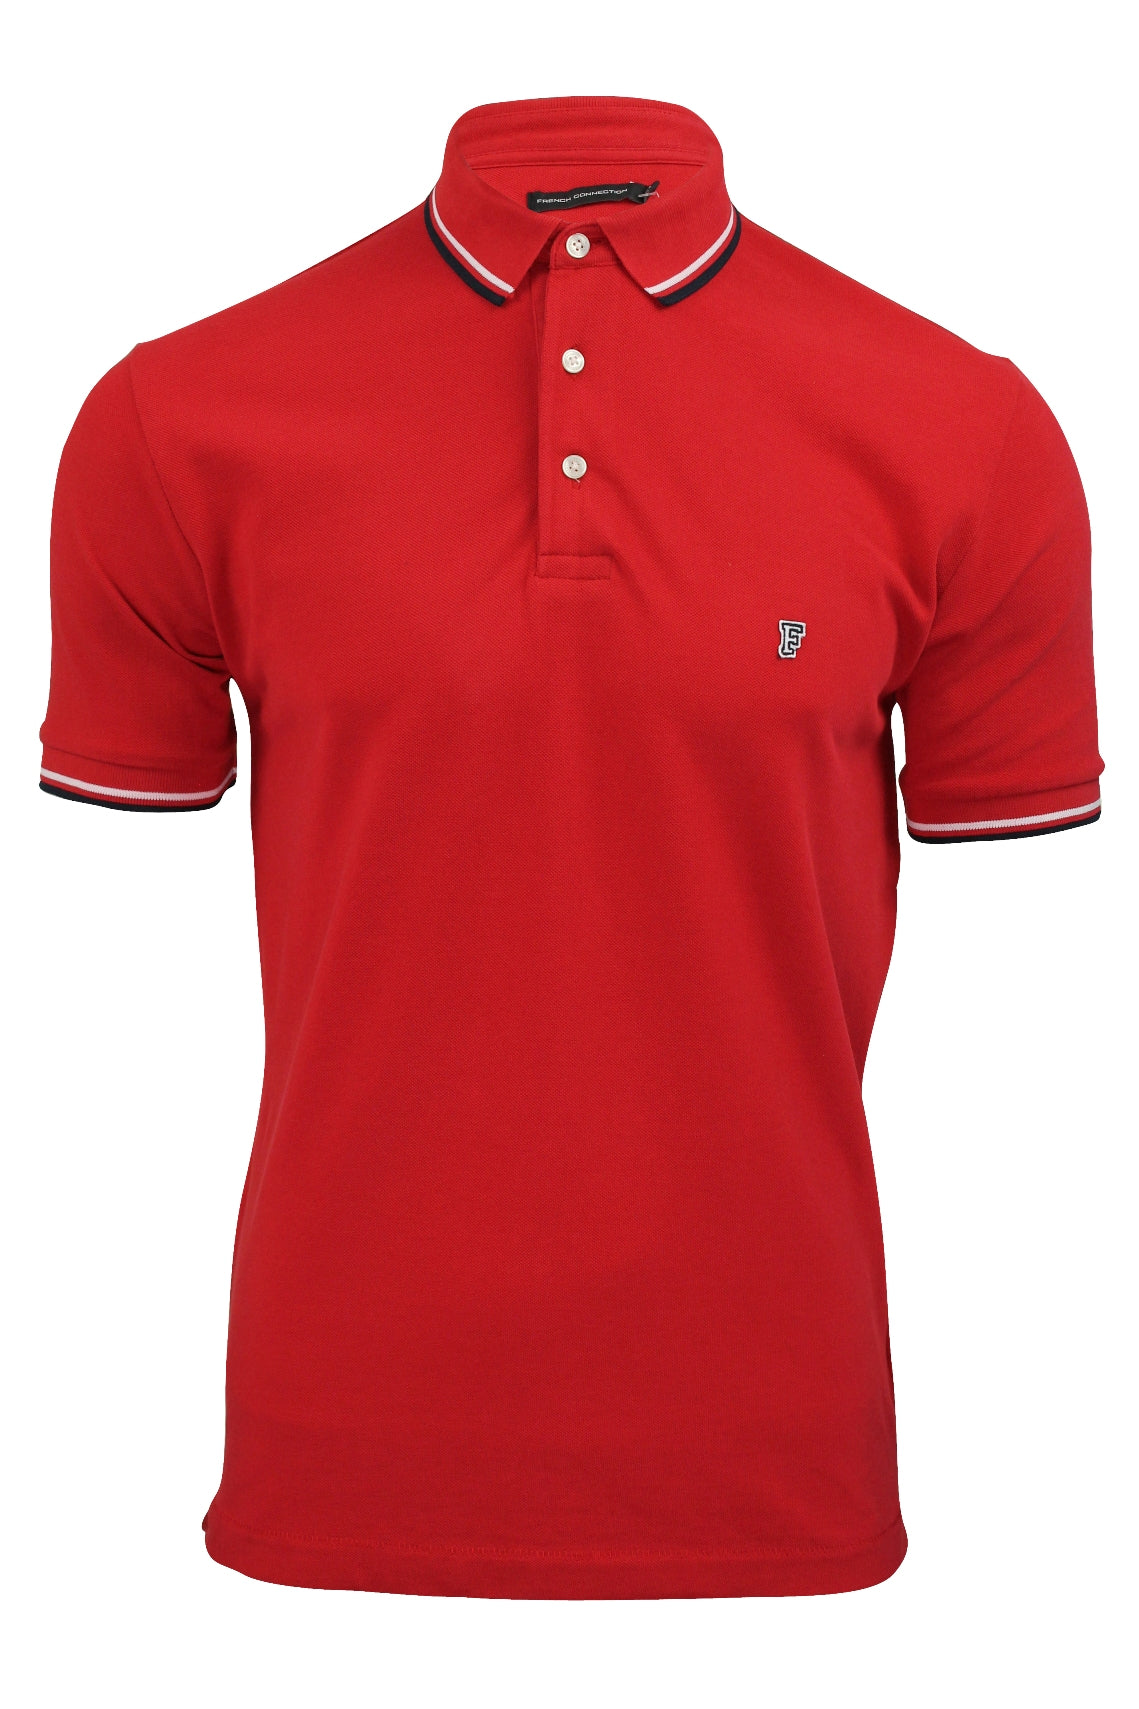 Mens Pique Polo T-Shirt by FCUK/French Connection 'F' Logo Twin Tipped_01_56Szb_Poster Red